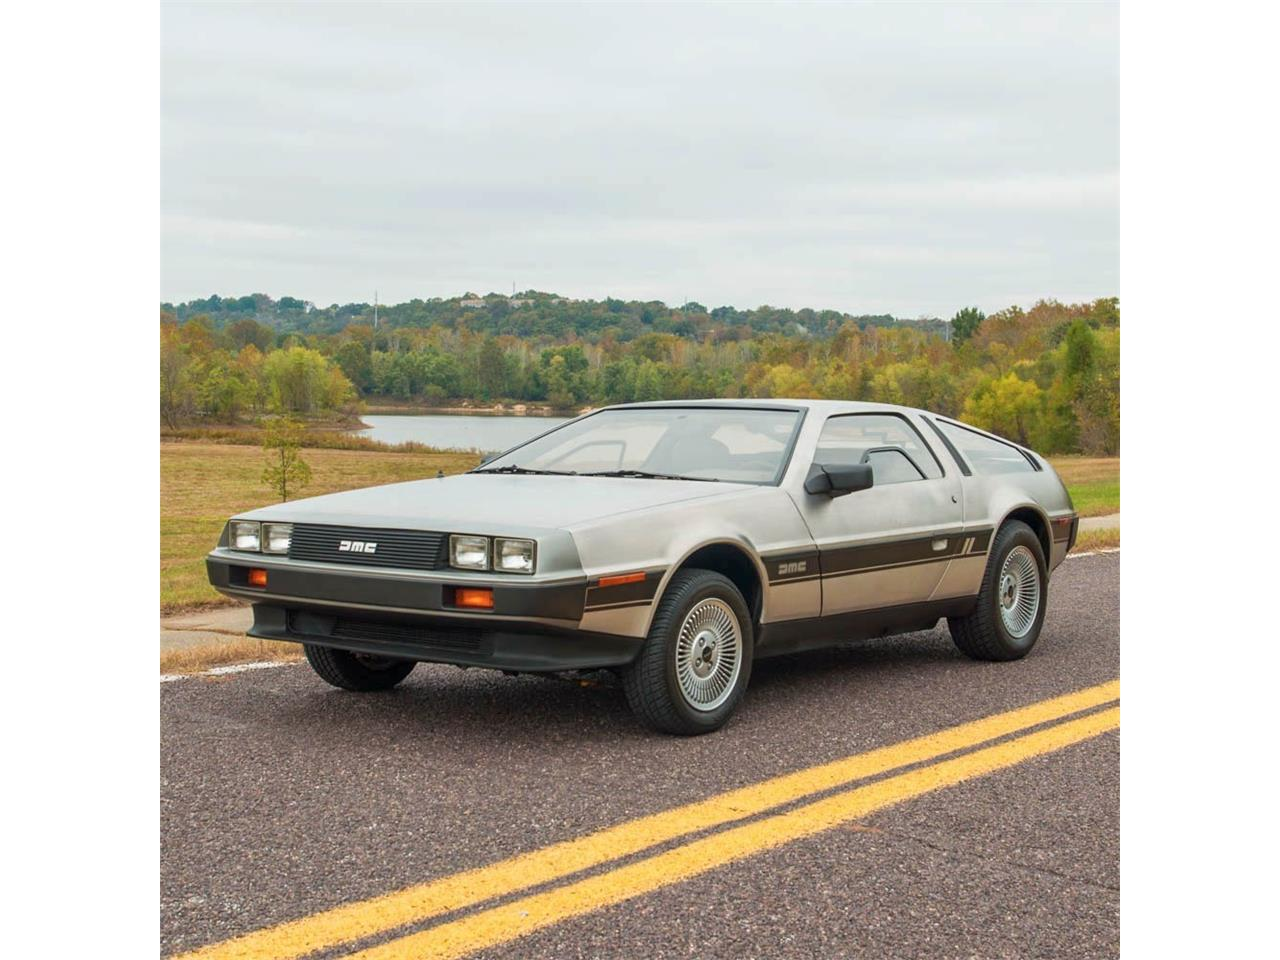 Large Picture of 1981 DeLorean DMC-12 located in Missouri - $73,500.00 Offered by MotoeXotica Classic Cars - JPXR